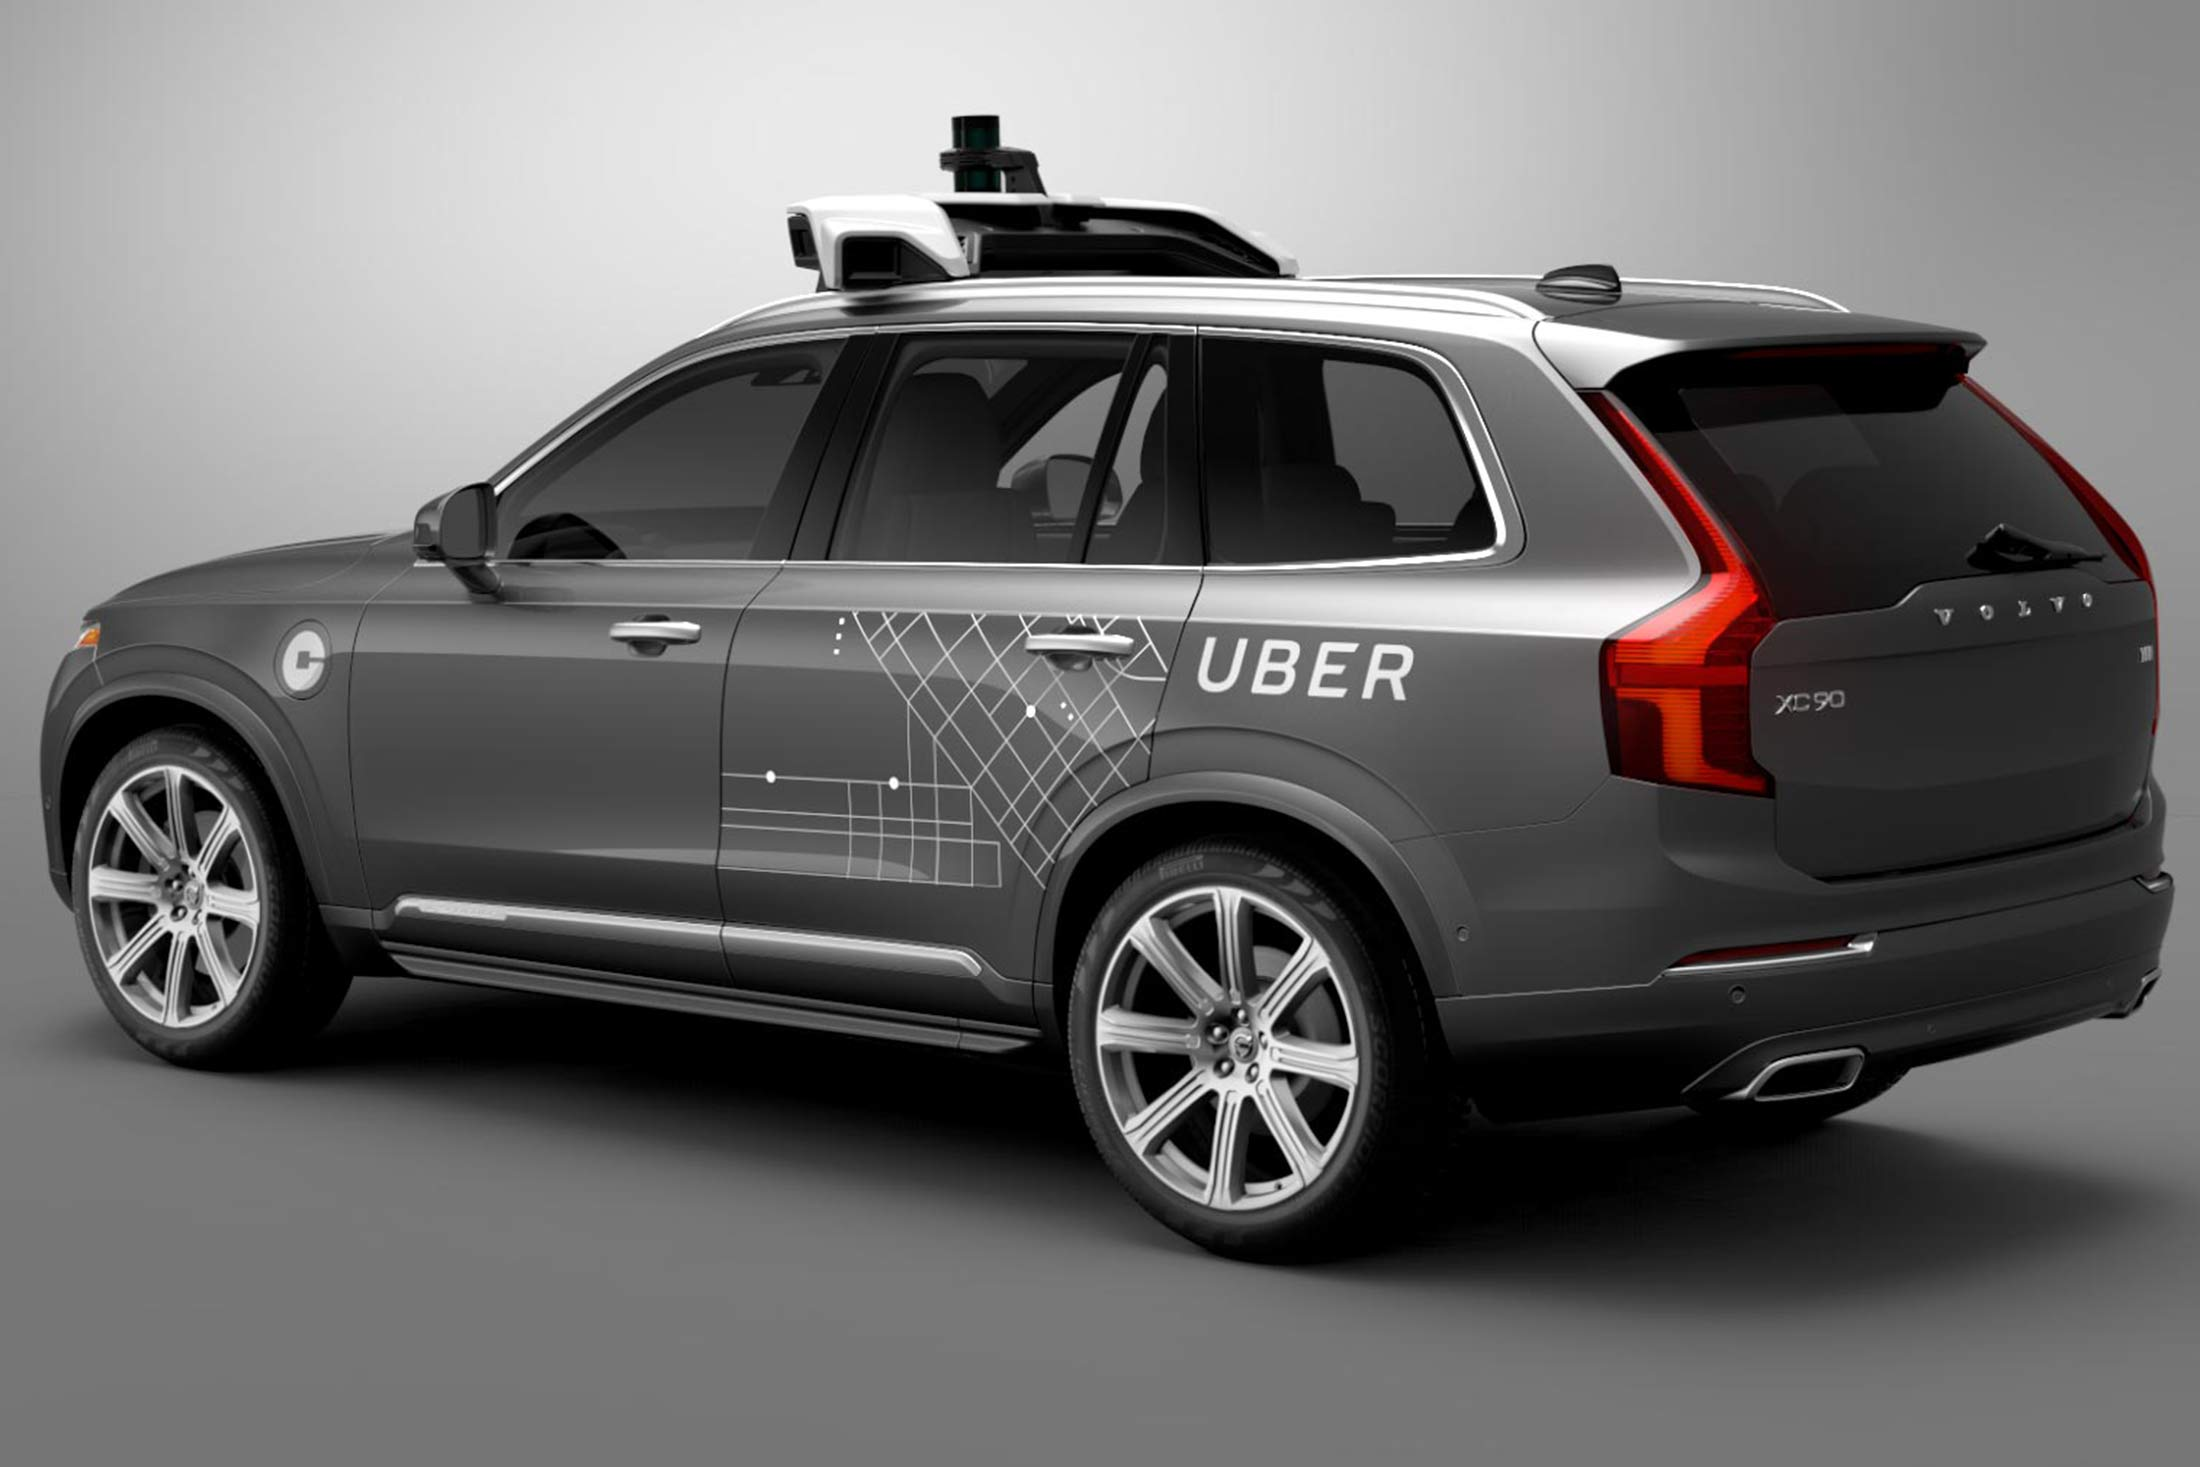 Uber Planning on Expanding Self-Driving Car Research